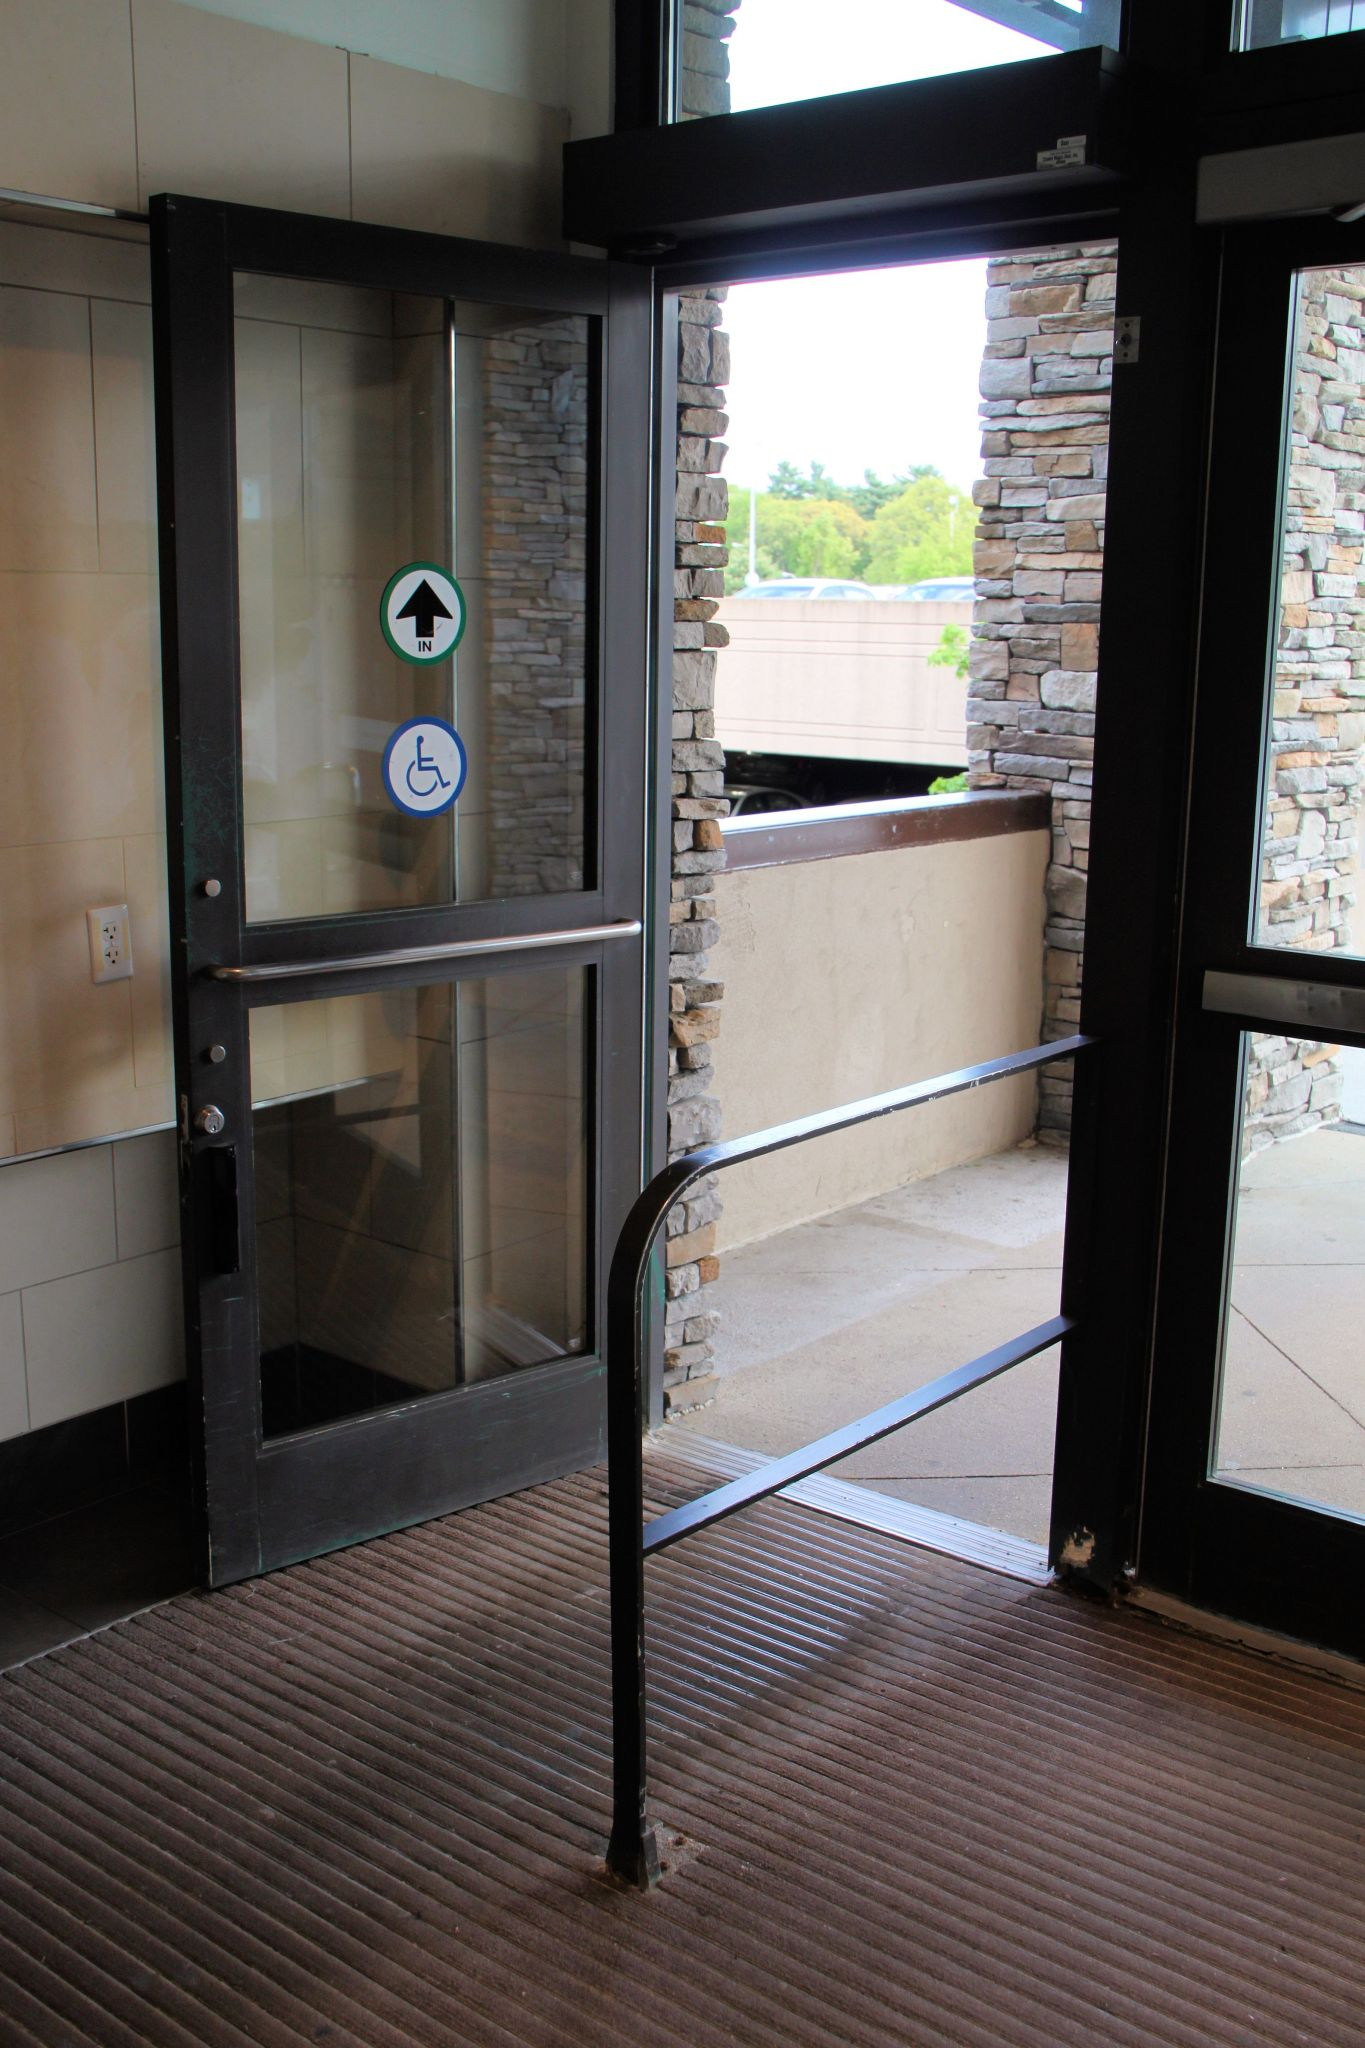 Understanding New Accessibility Requirements For Doors Motion Detectors Occupancy Sensors Electrical 101 If A Sensor Is Used To Actuate Door With An Automatic Operator Then Guide Rails And Safety Are Typically Required